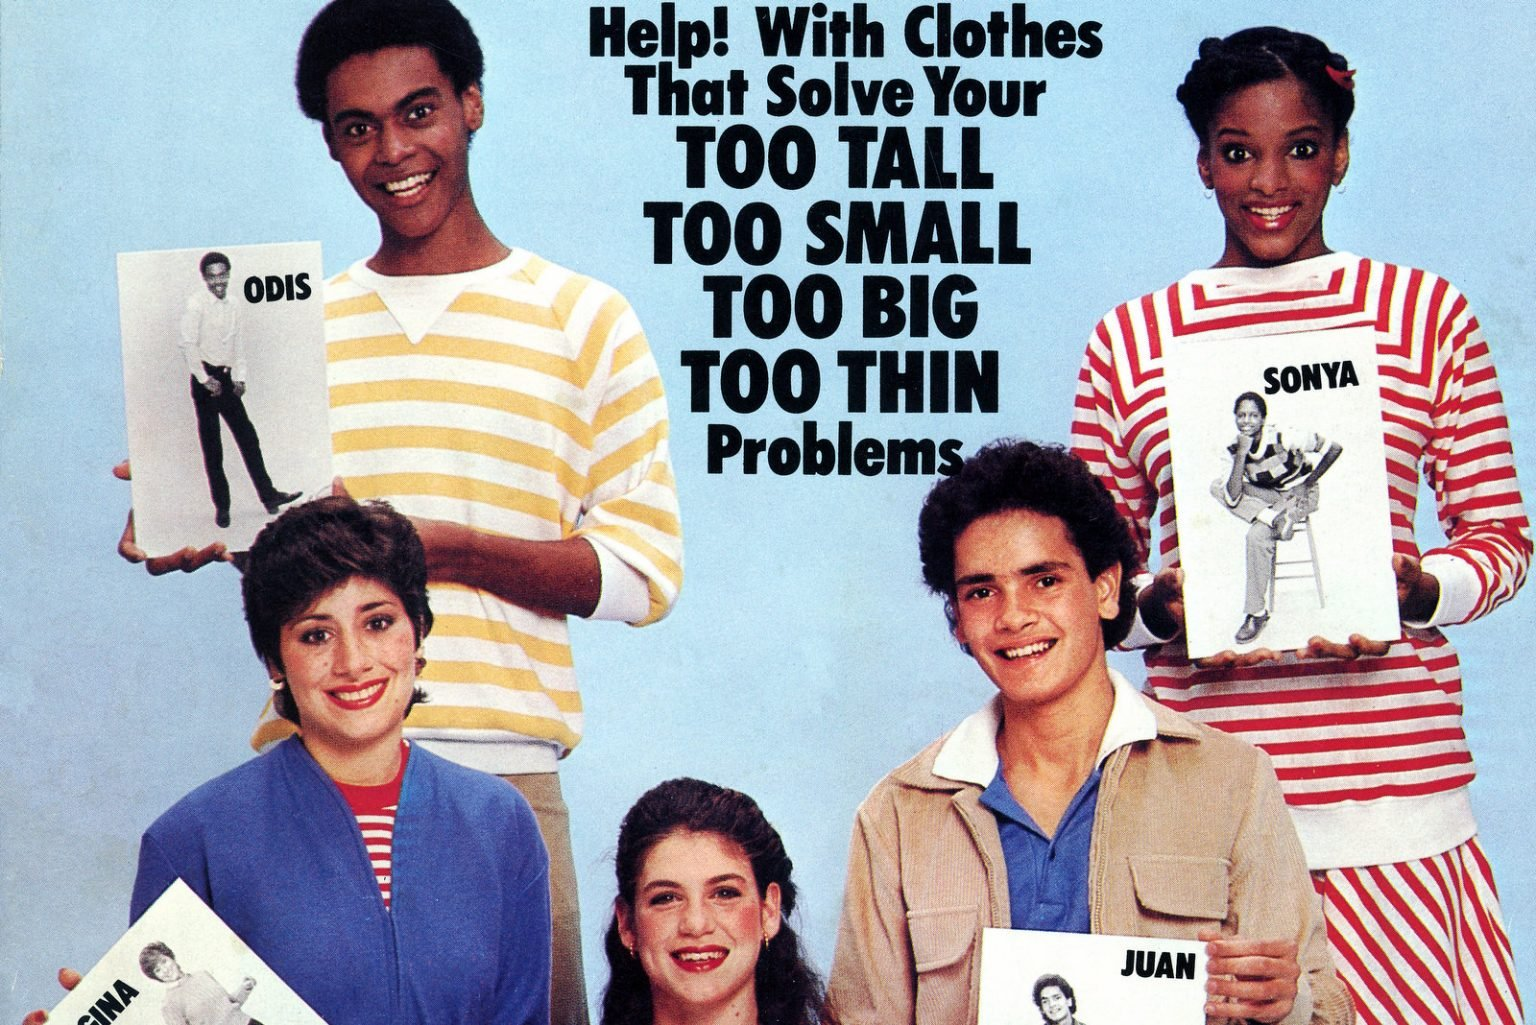 Vintage '80s fashion tips for teens for clothes that fit the shape you're in (1982)